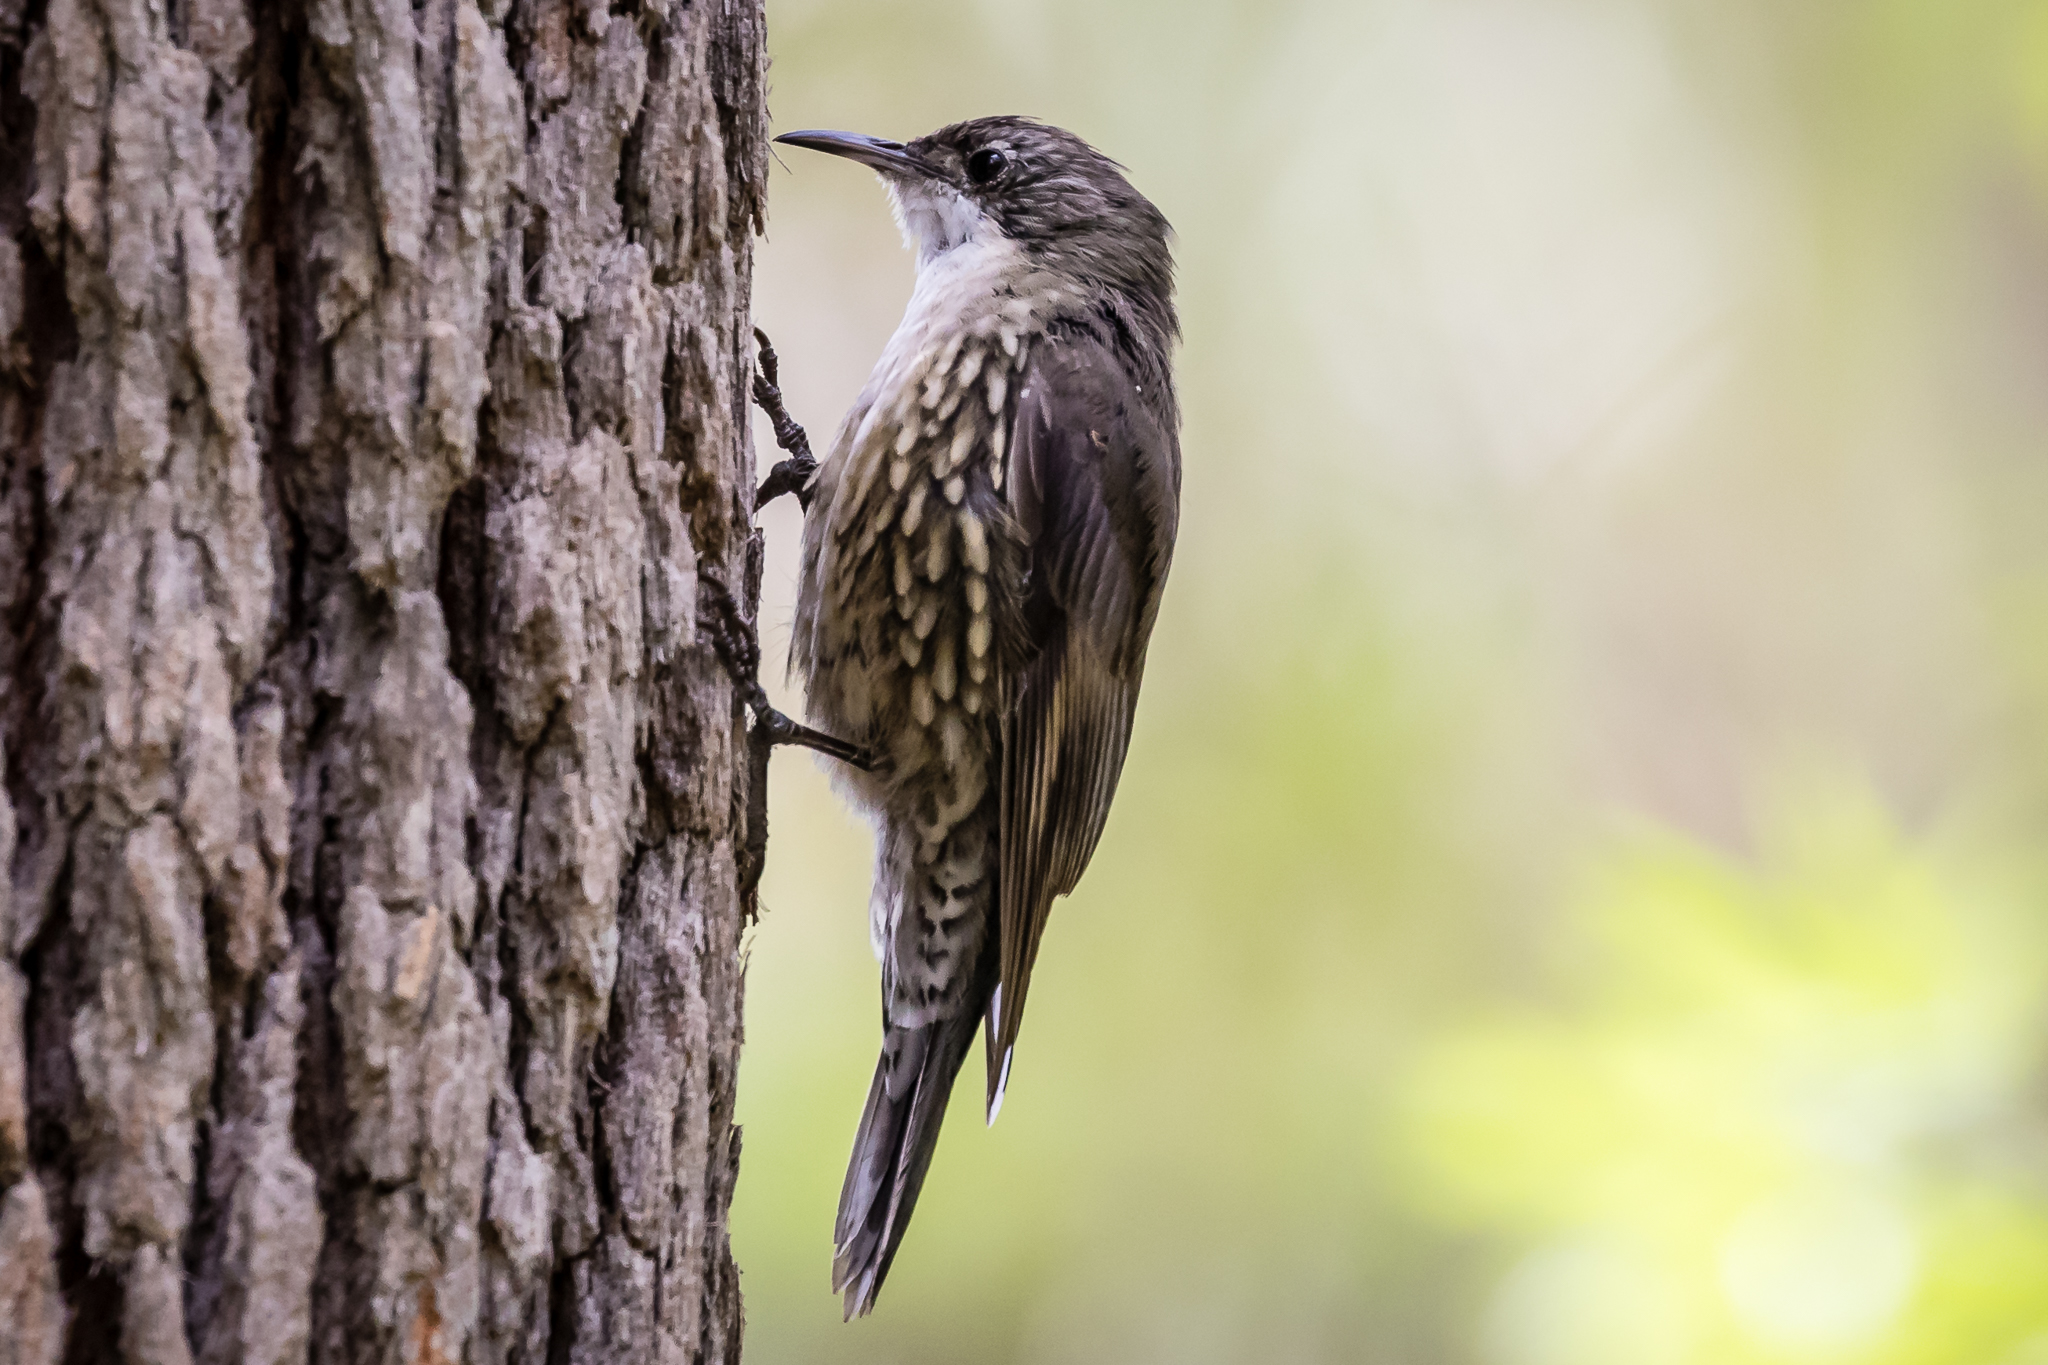 The White-throated Treecreeper is a woodland inhabitant. It pecks its way up trees searching for ants.